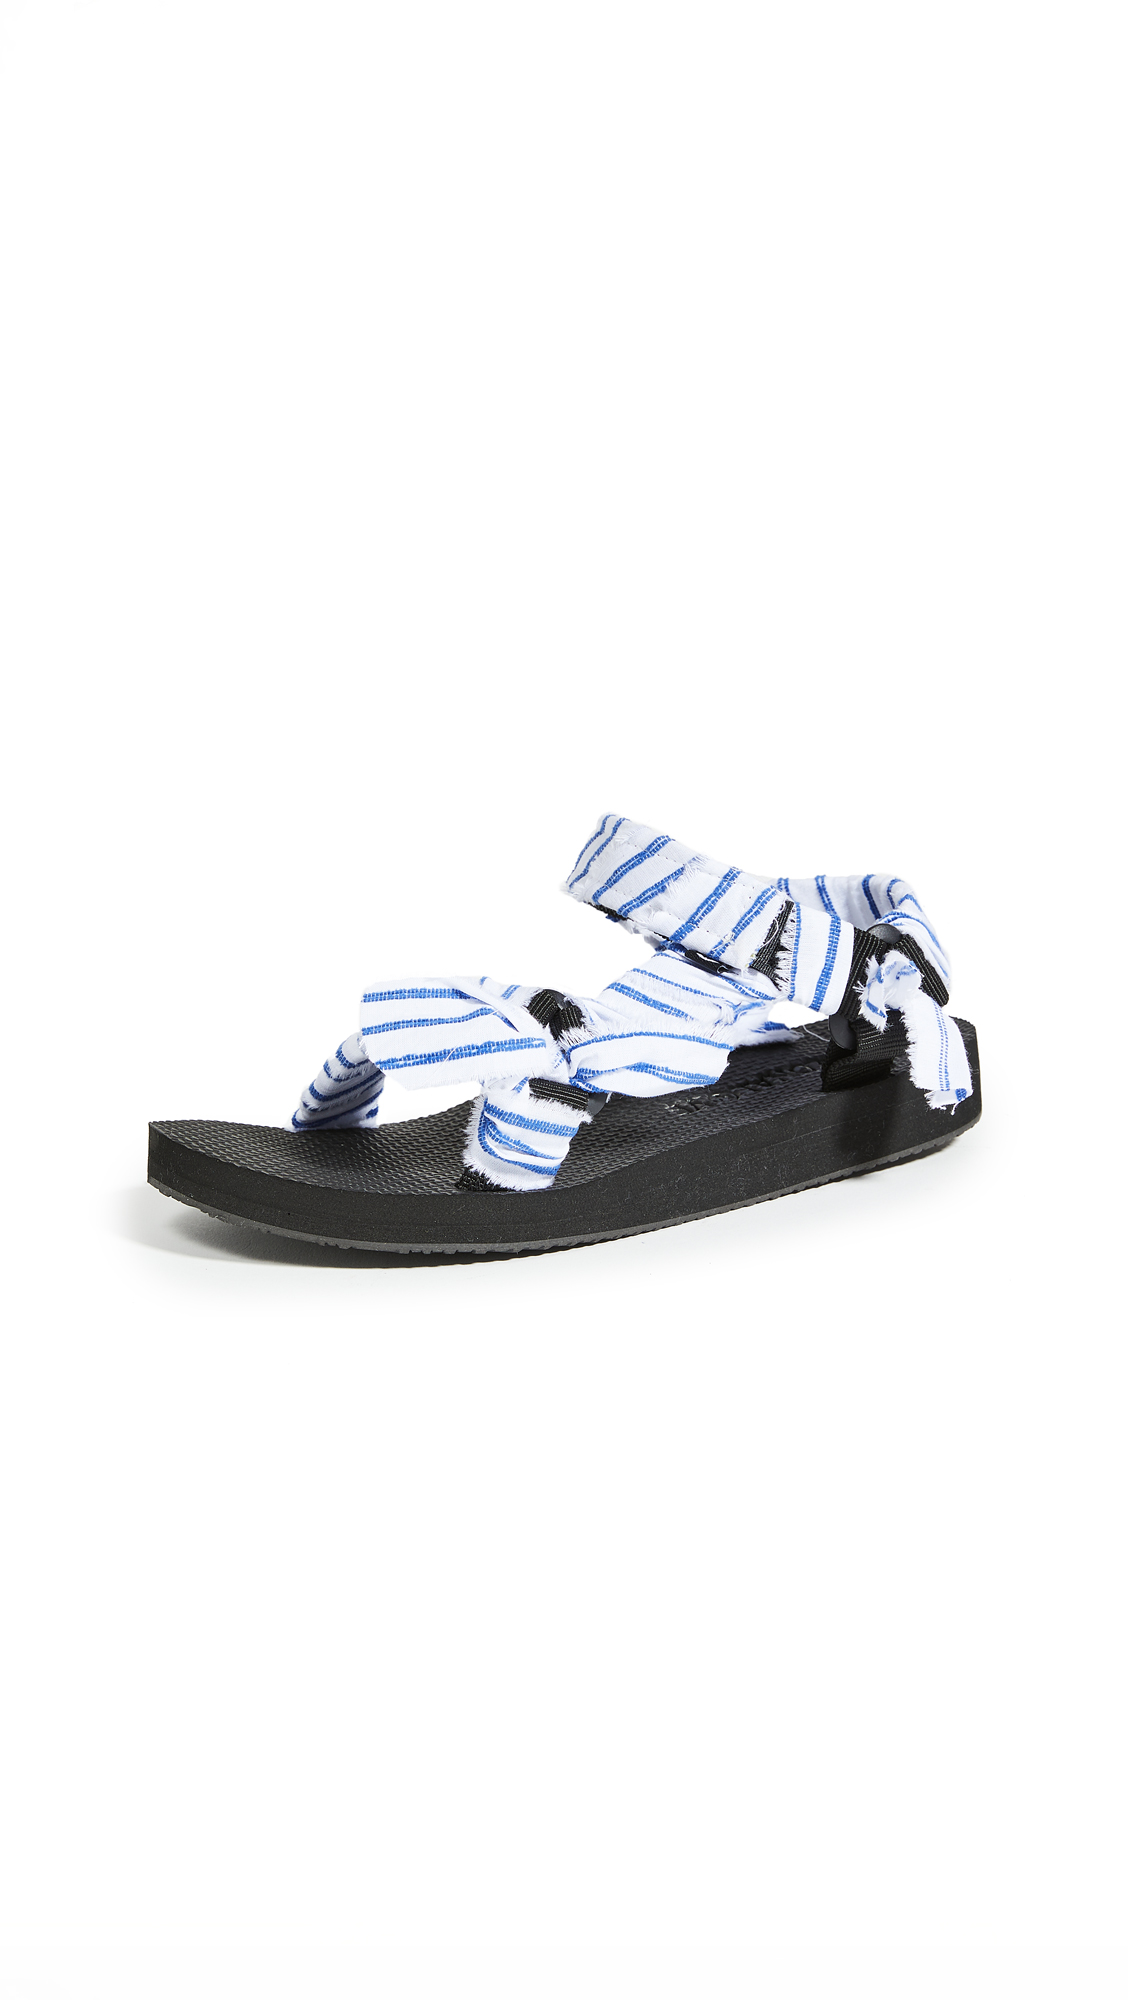 Buy Arizona Love x By Any Other Name Sandals online, shop Arizona Love